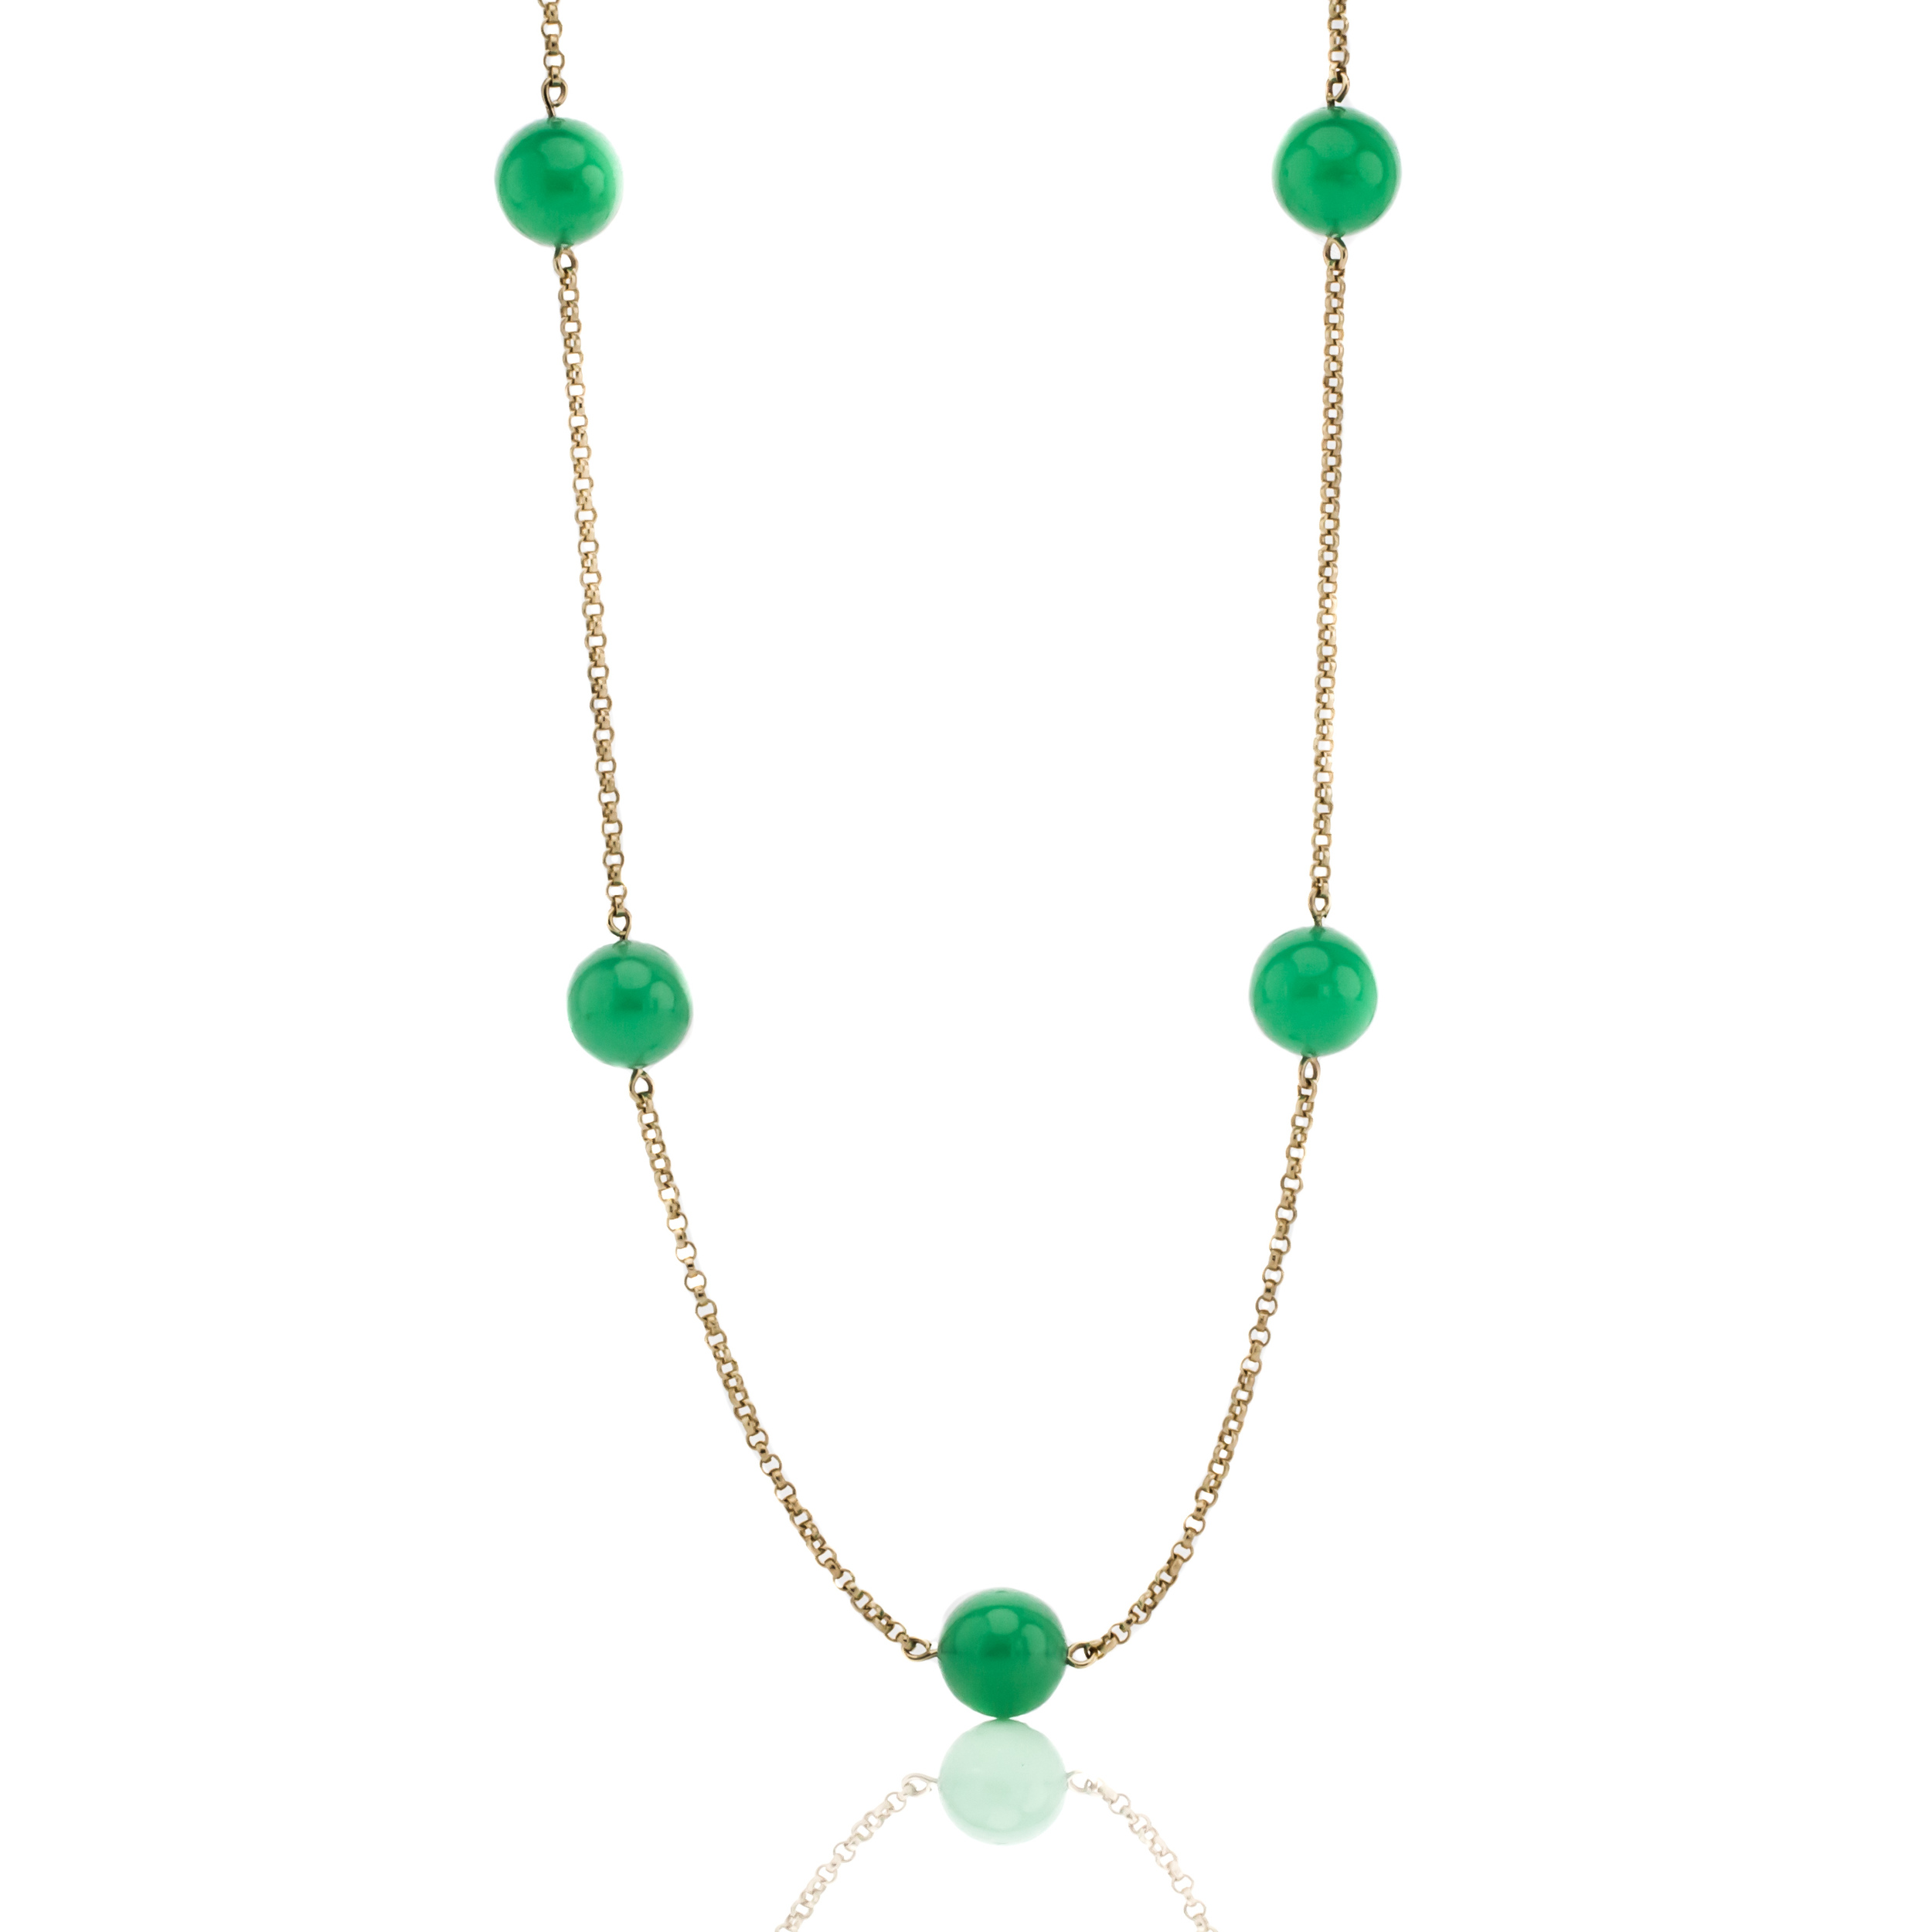 CHRYSOPRASE AND 18KY STATION NECKLACE